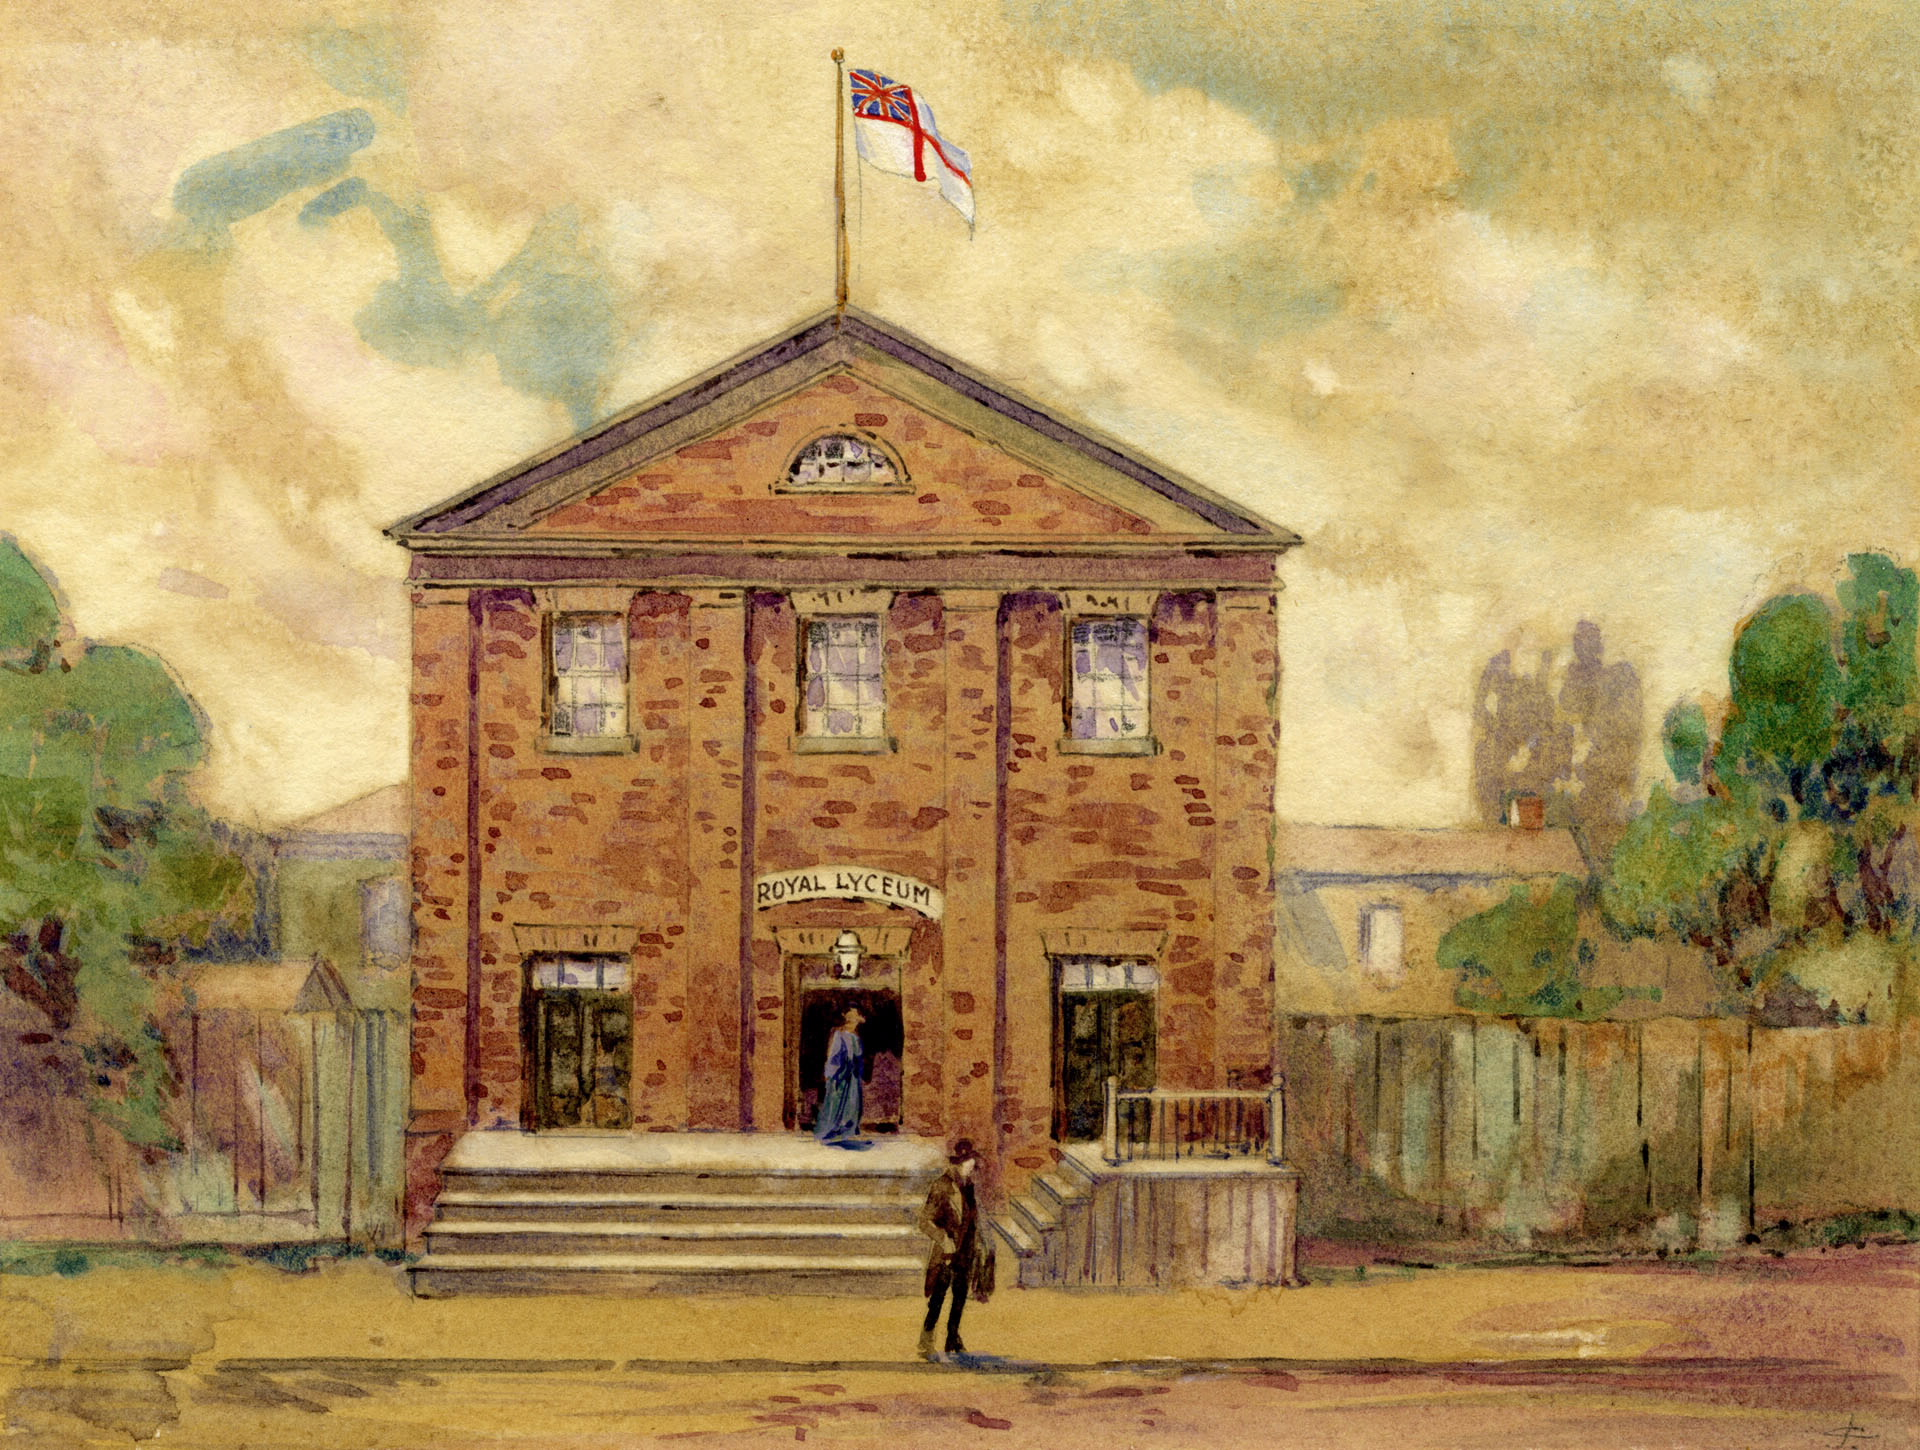 "Royal Lyceum Theatre - Exterior  Cotton, John Wesley. ""Royal Lyceum Theatre, King St. W., s. side, between Bay & York Sts."" Toronto Public Library. Toronto Reference Library, Baldwin Collection, JRR 857.  www.torontopubliclibrary.ca/detail.jsp?R=DC-PICTURES-R-6837"